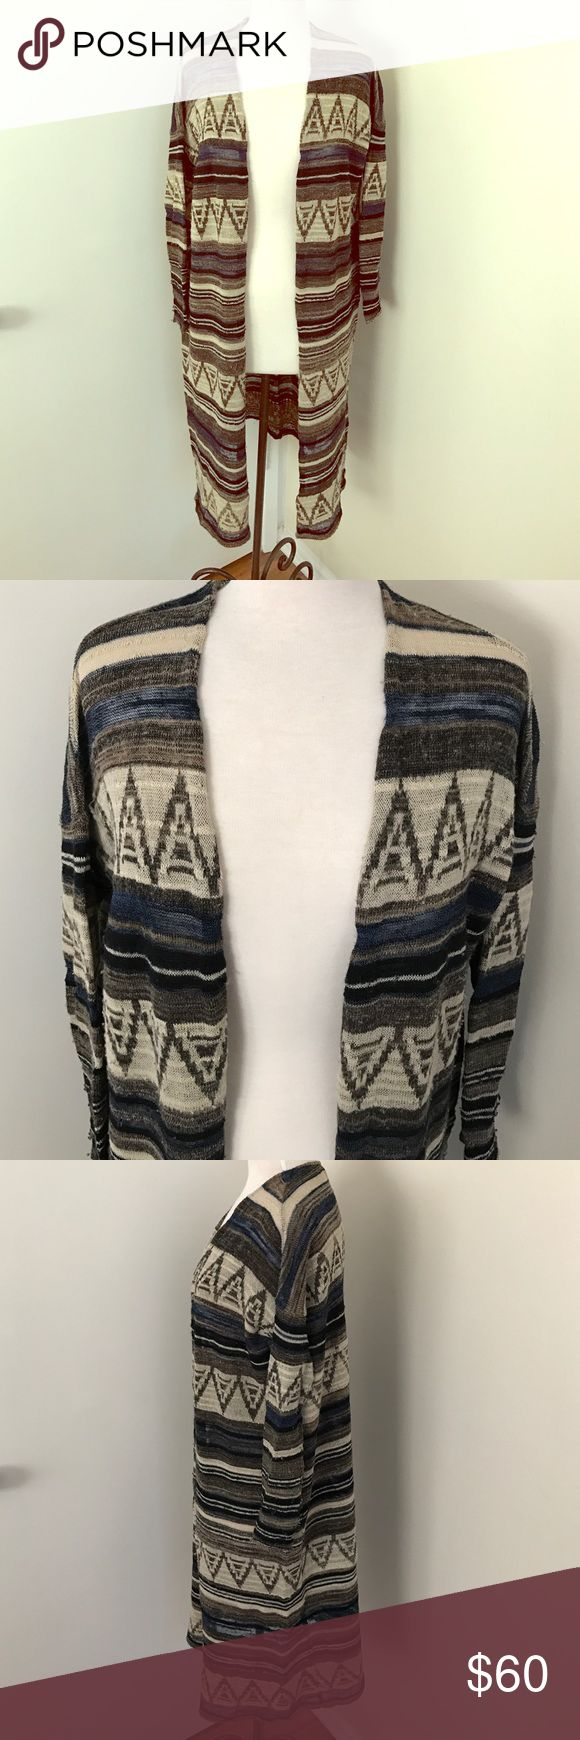 Free People Navajo Print Cardigan Sweater XS Super cute and comfy Free People Navajo print Cardigan sweater. 59% acrylic 26% wool 8% nylon 3% alpaca 3% rayon 1% linen. Size XS. Good used condition with piling from wear Free People Sweaters Cardigans